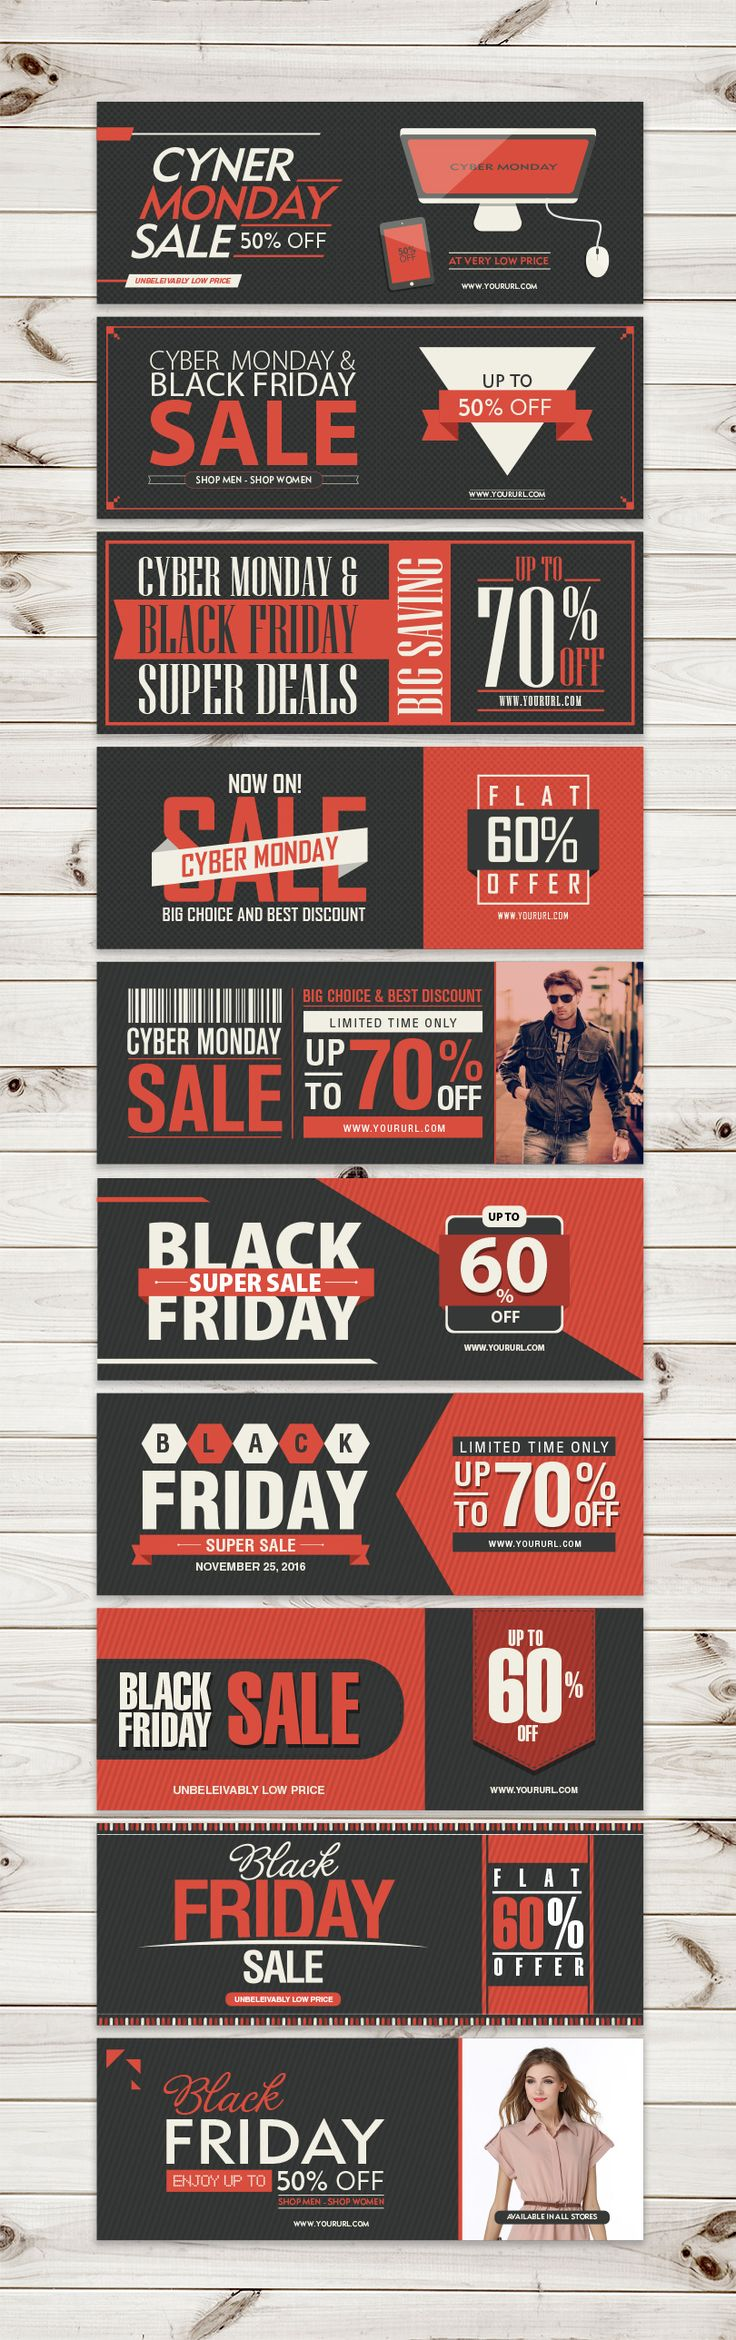 Banner Design Ideas pvc bannersjpg Black Friday Cyber Monday Web Banners In Ai Eps Cdr Pdf Format